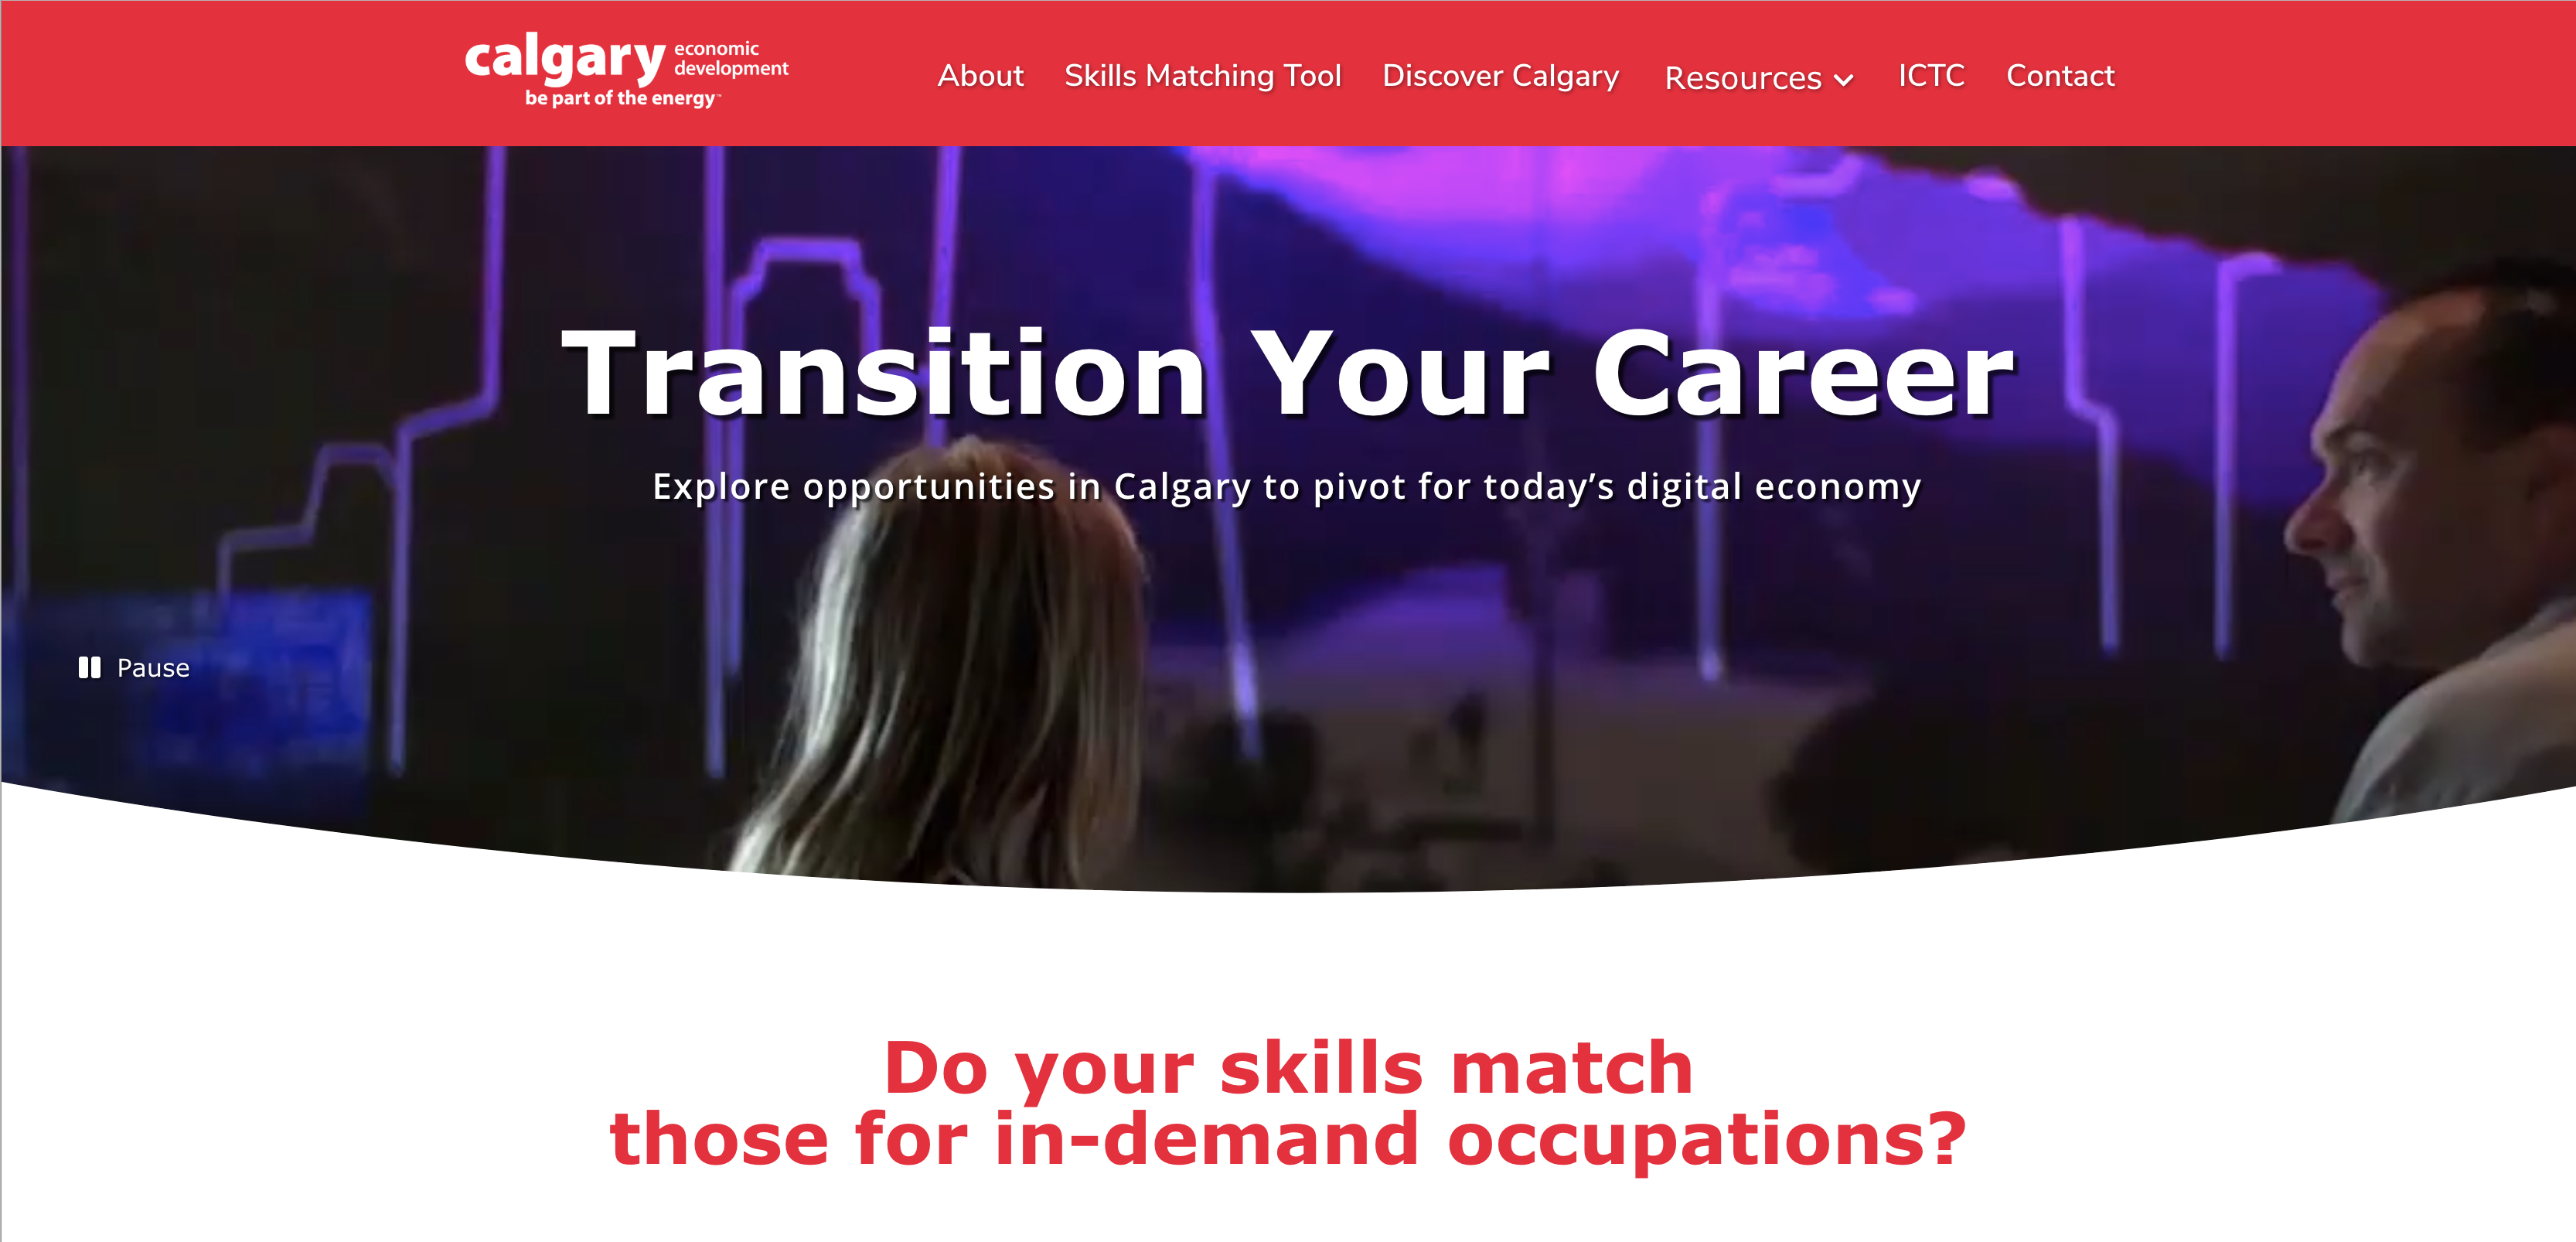 New online tool aims to connect laid-off workers with careers in tech